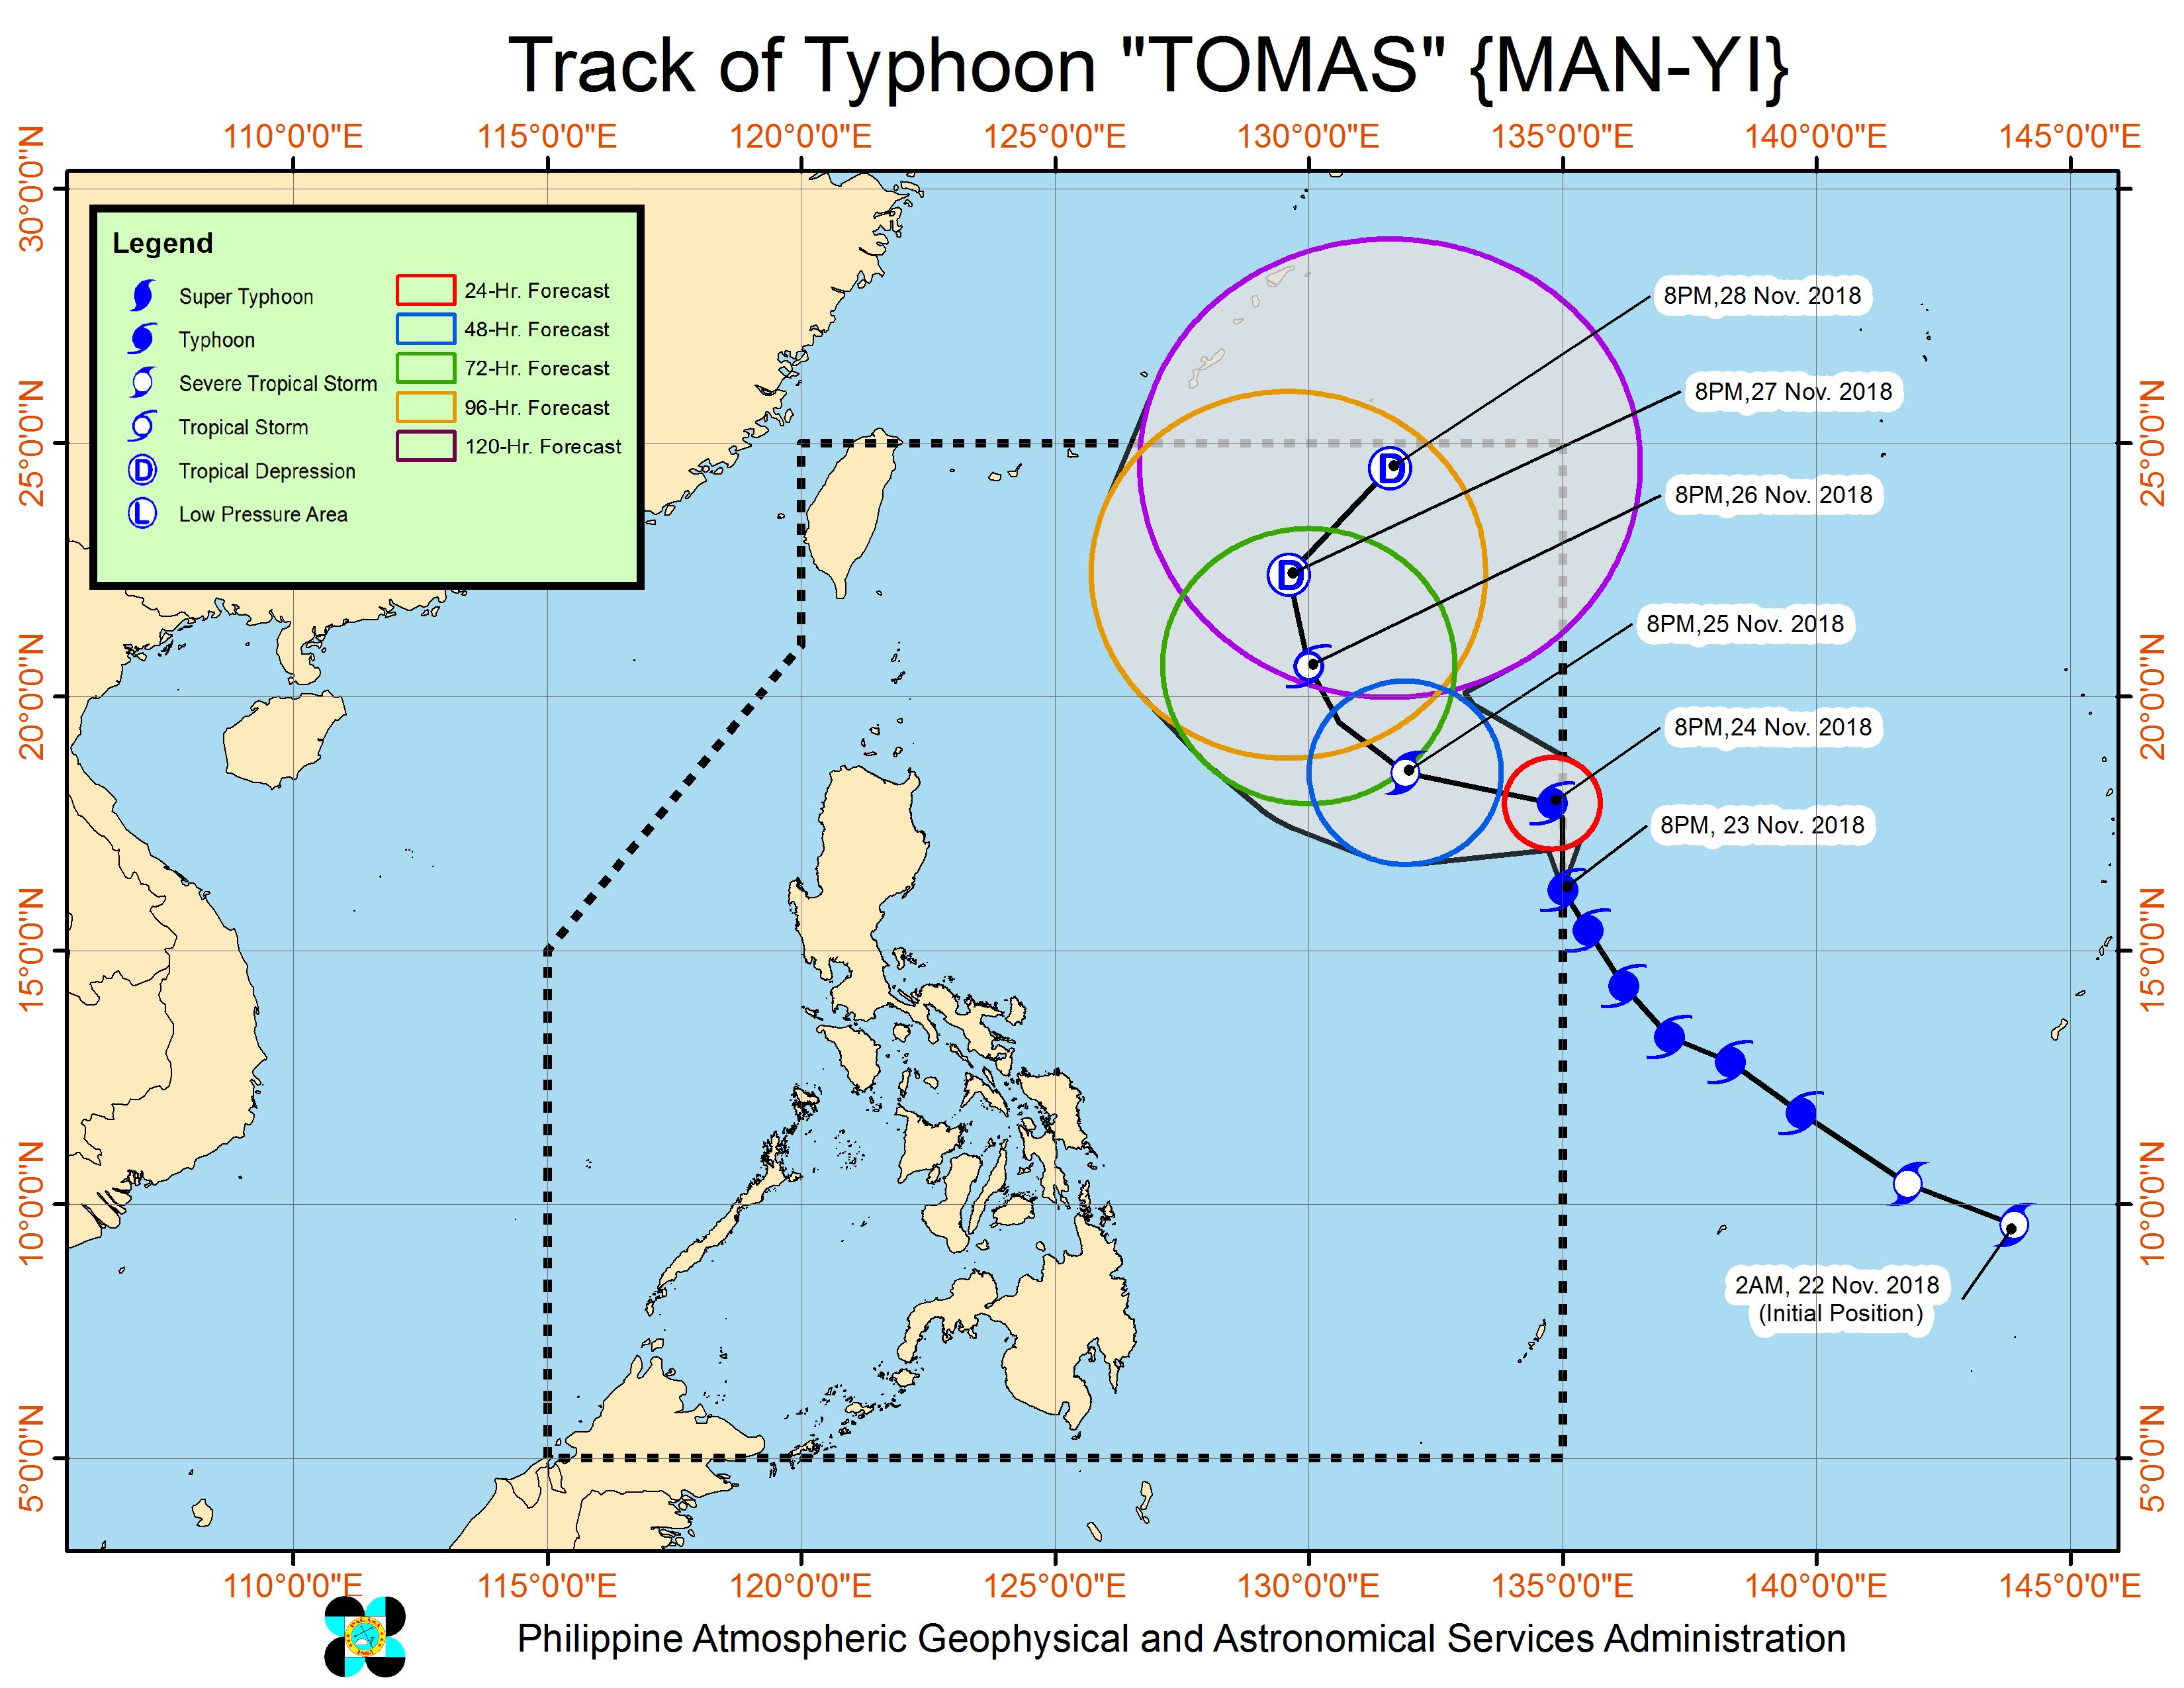 Forecast track of Typhoon Tomas (Man-yi) as of November 23, 2018, 11:30 pm. Image from PAGASA